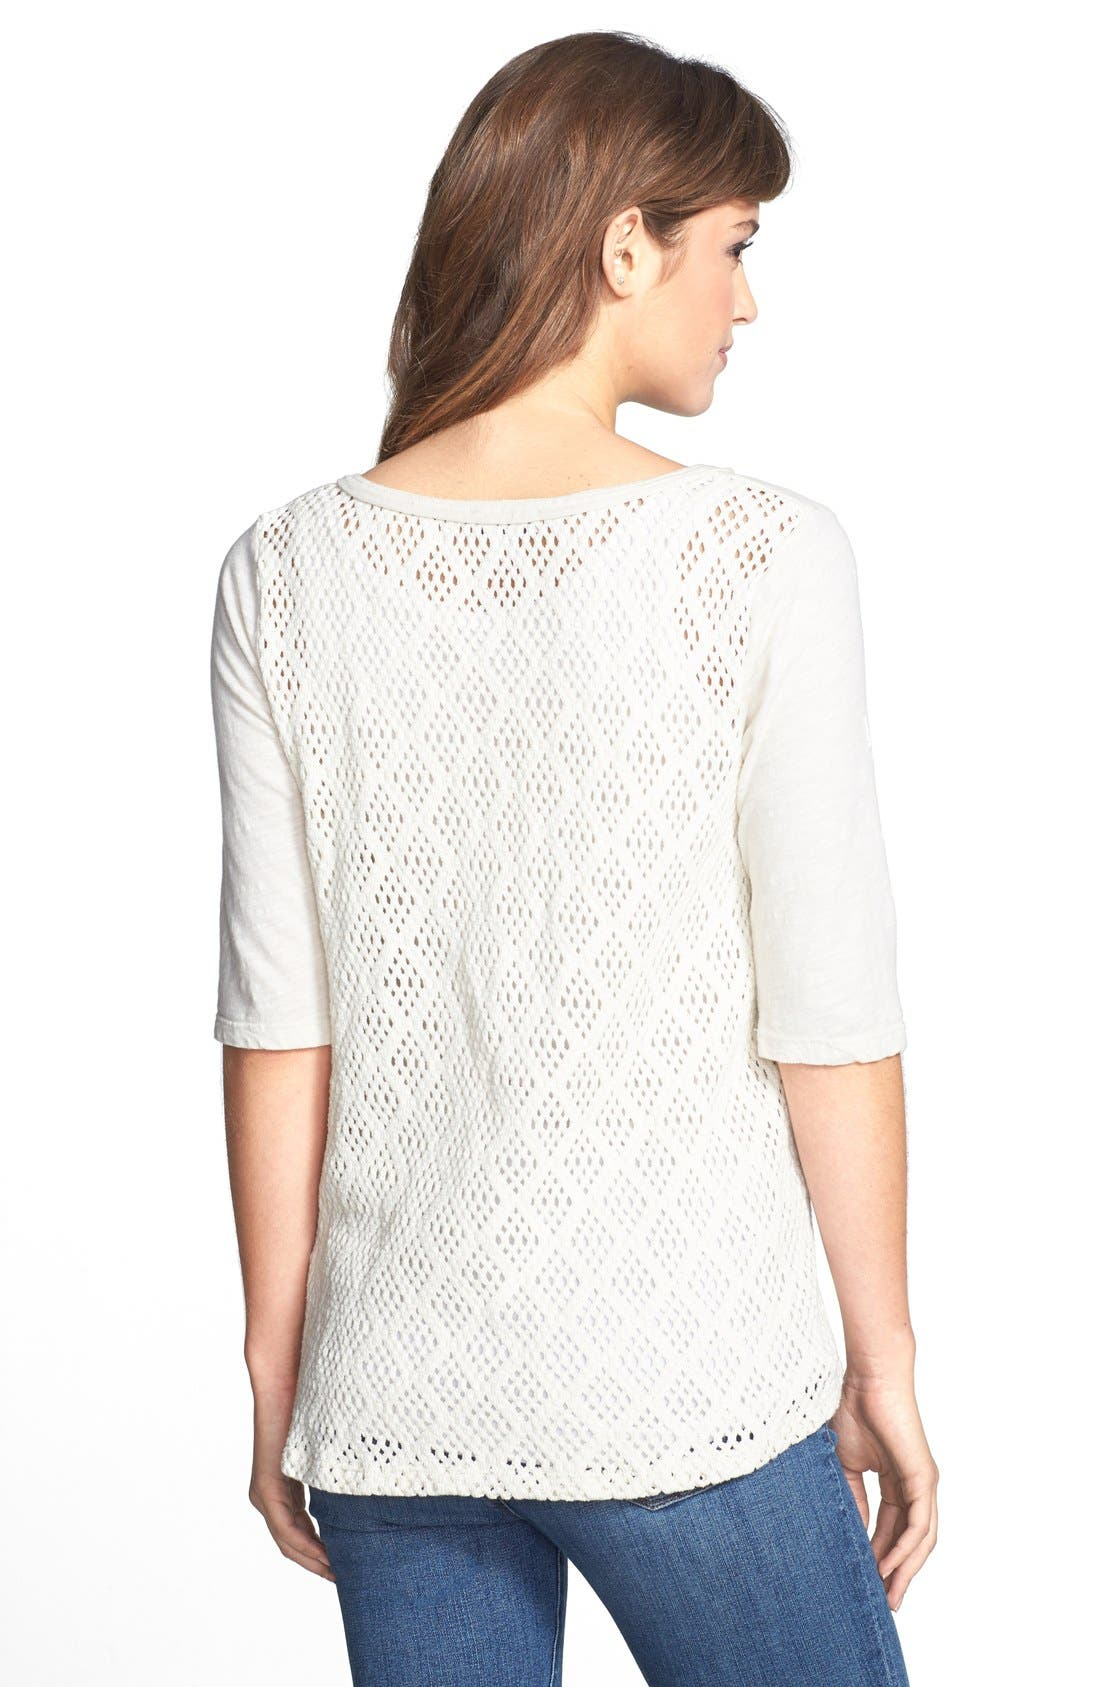 Alternate Image 2  - Lucky Brand 'Calistoga' Crochet Back Top